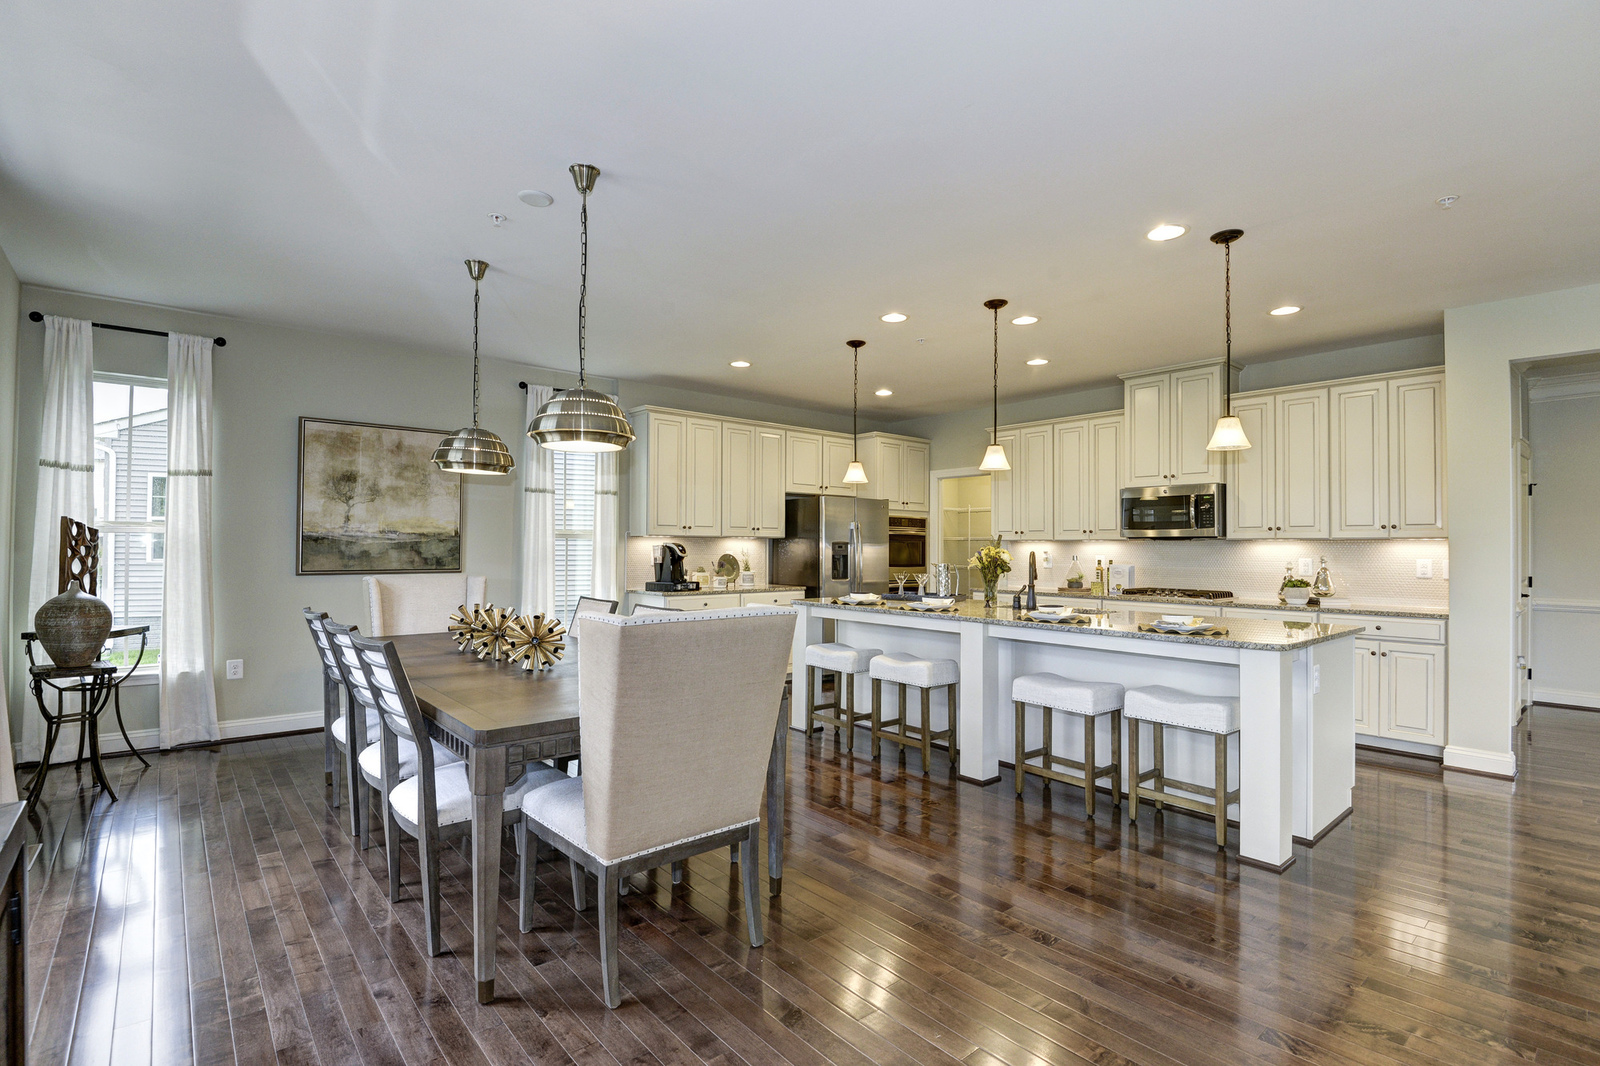 New hayworth home model for sale at bentley park traditional homes find your new home malvernweather Image collections